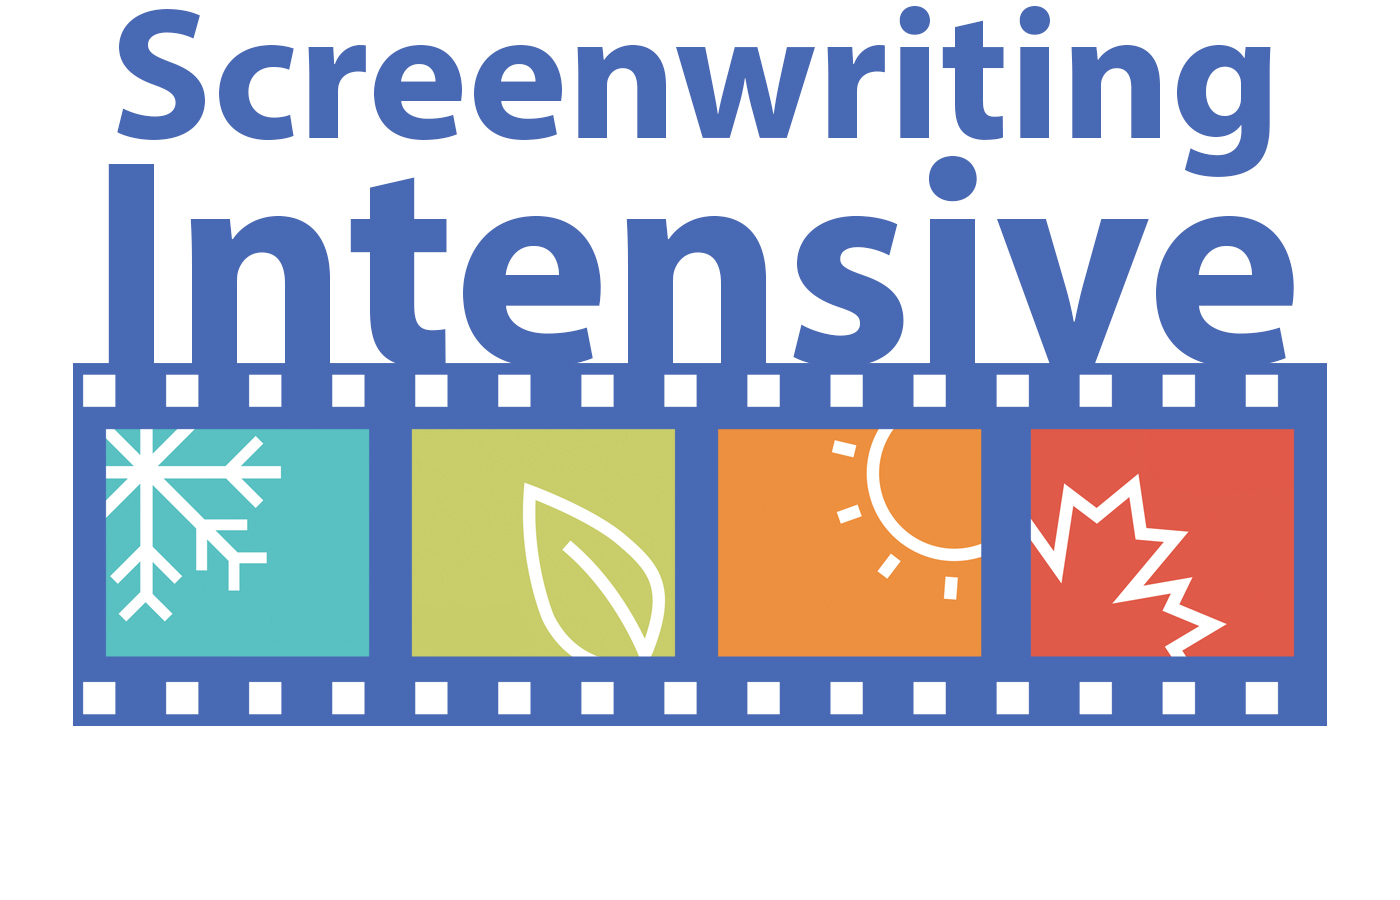 Screenwriting Intensive